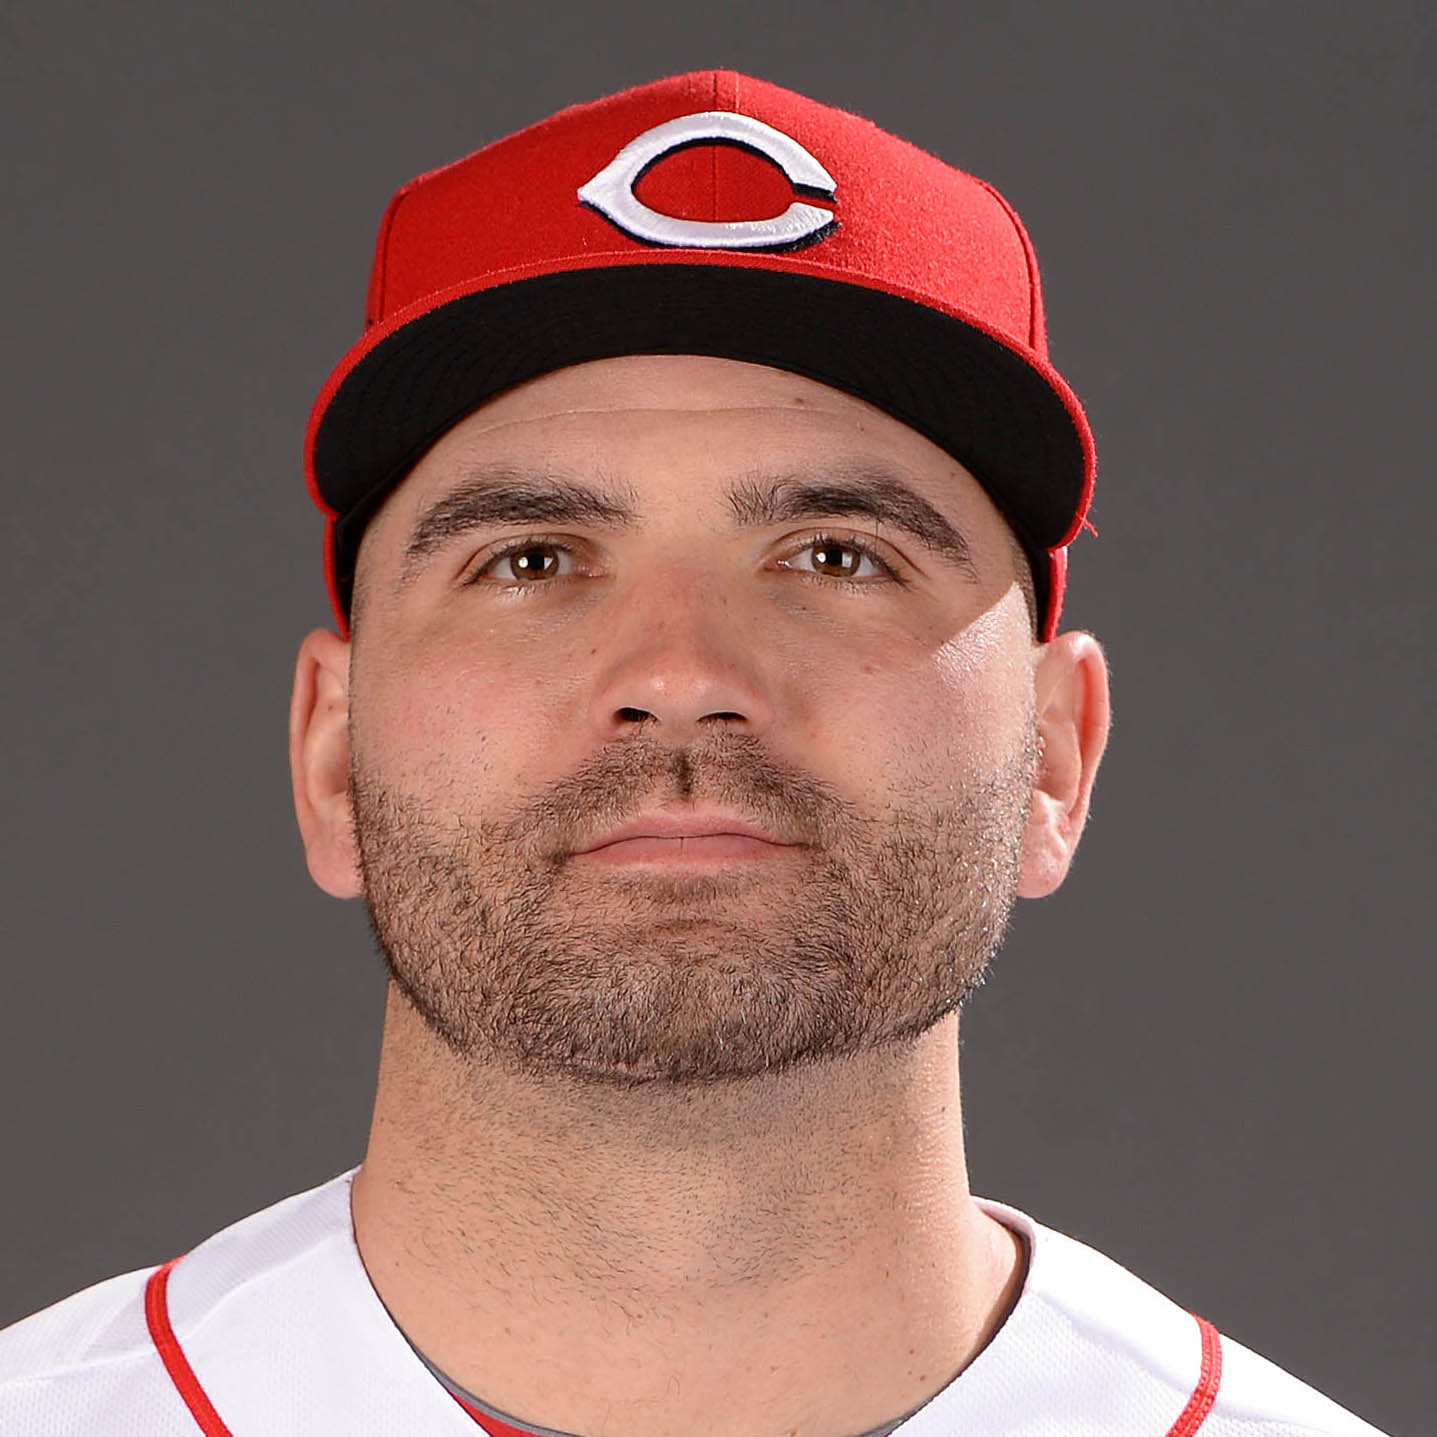 Joey Votto (L) Headshot